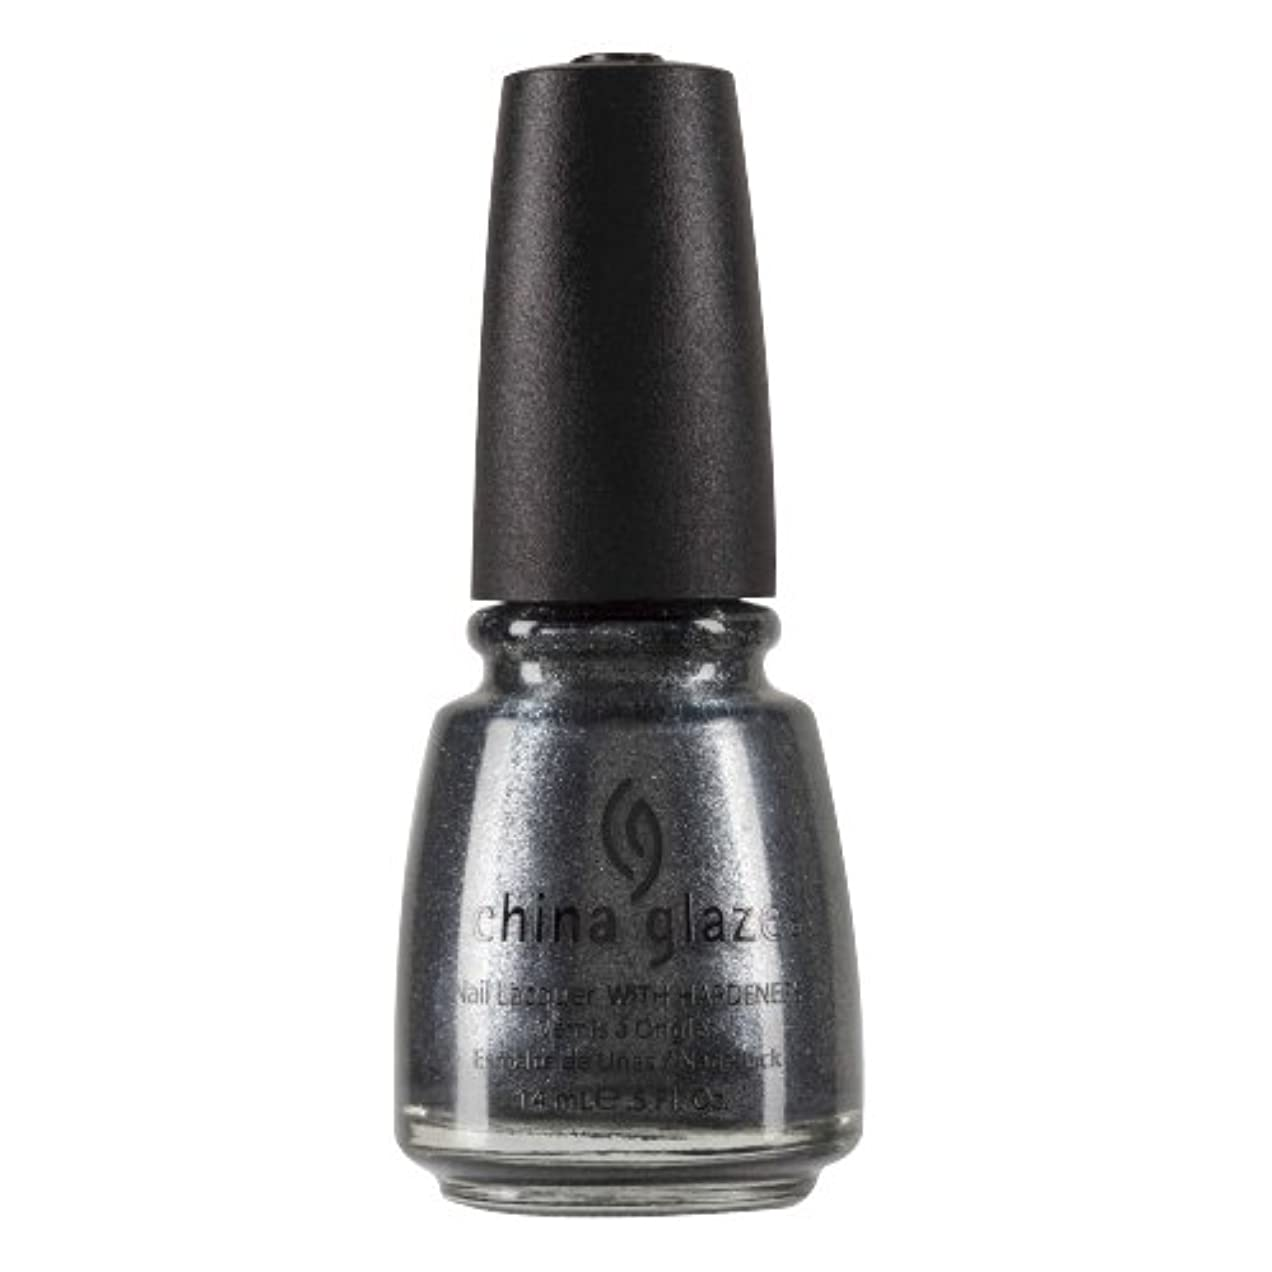 成功する更新十年CHINA GLAZE Nail Lacquer with Nail Hardner 2 - Jitterbug (並行輸入品)